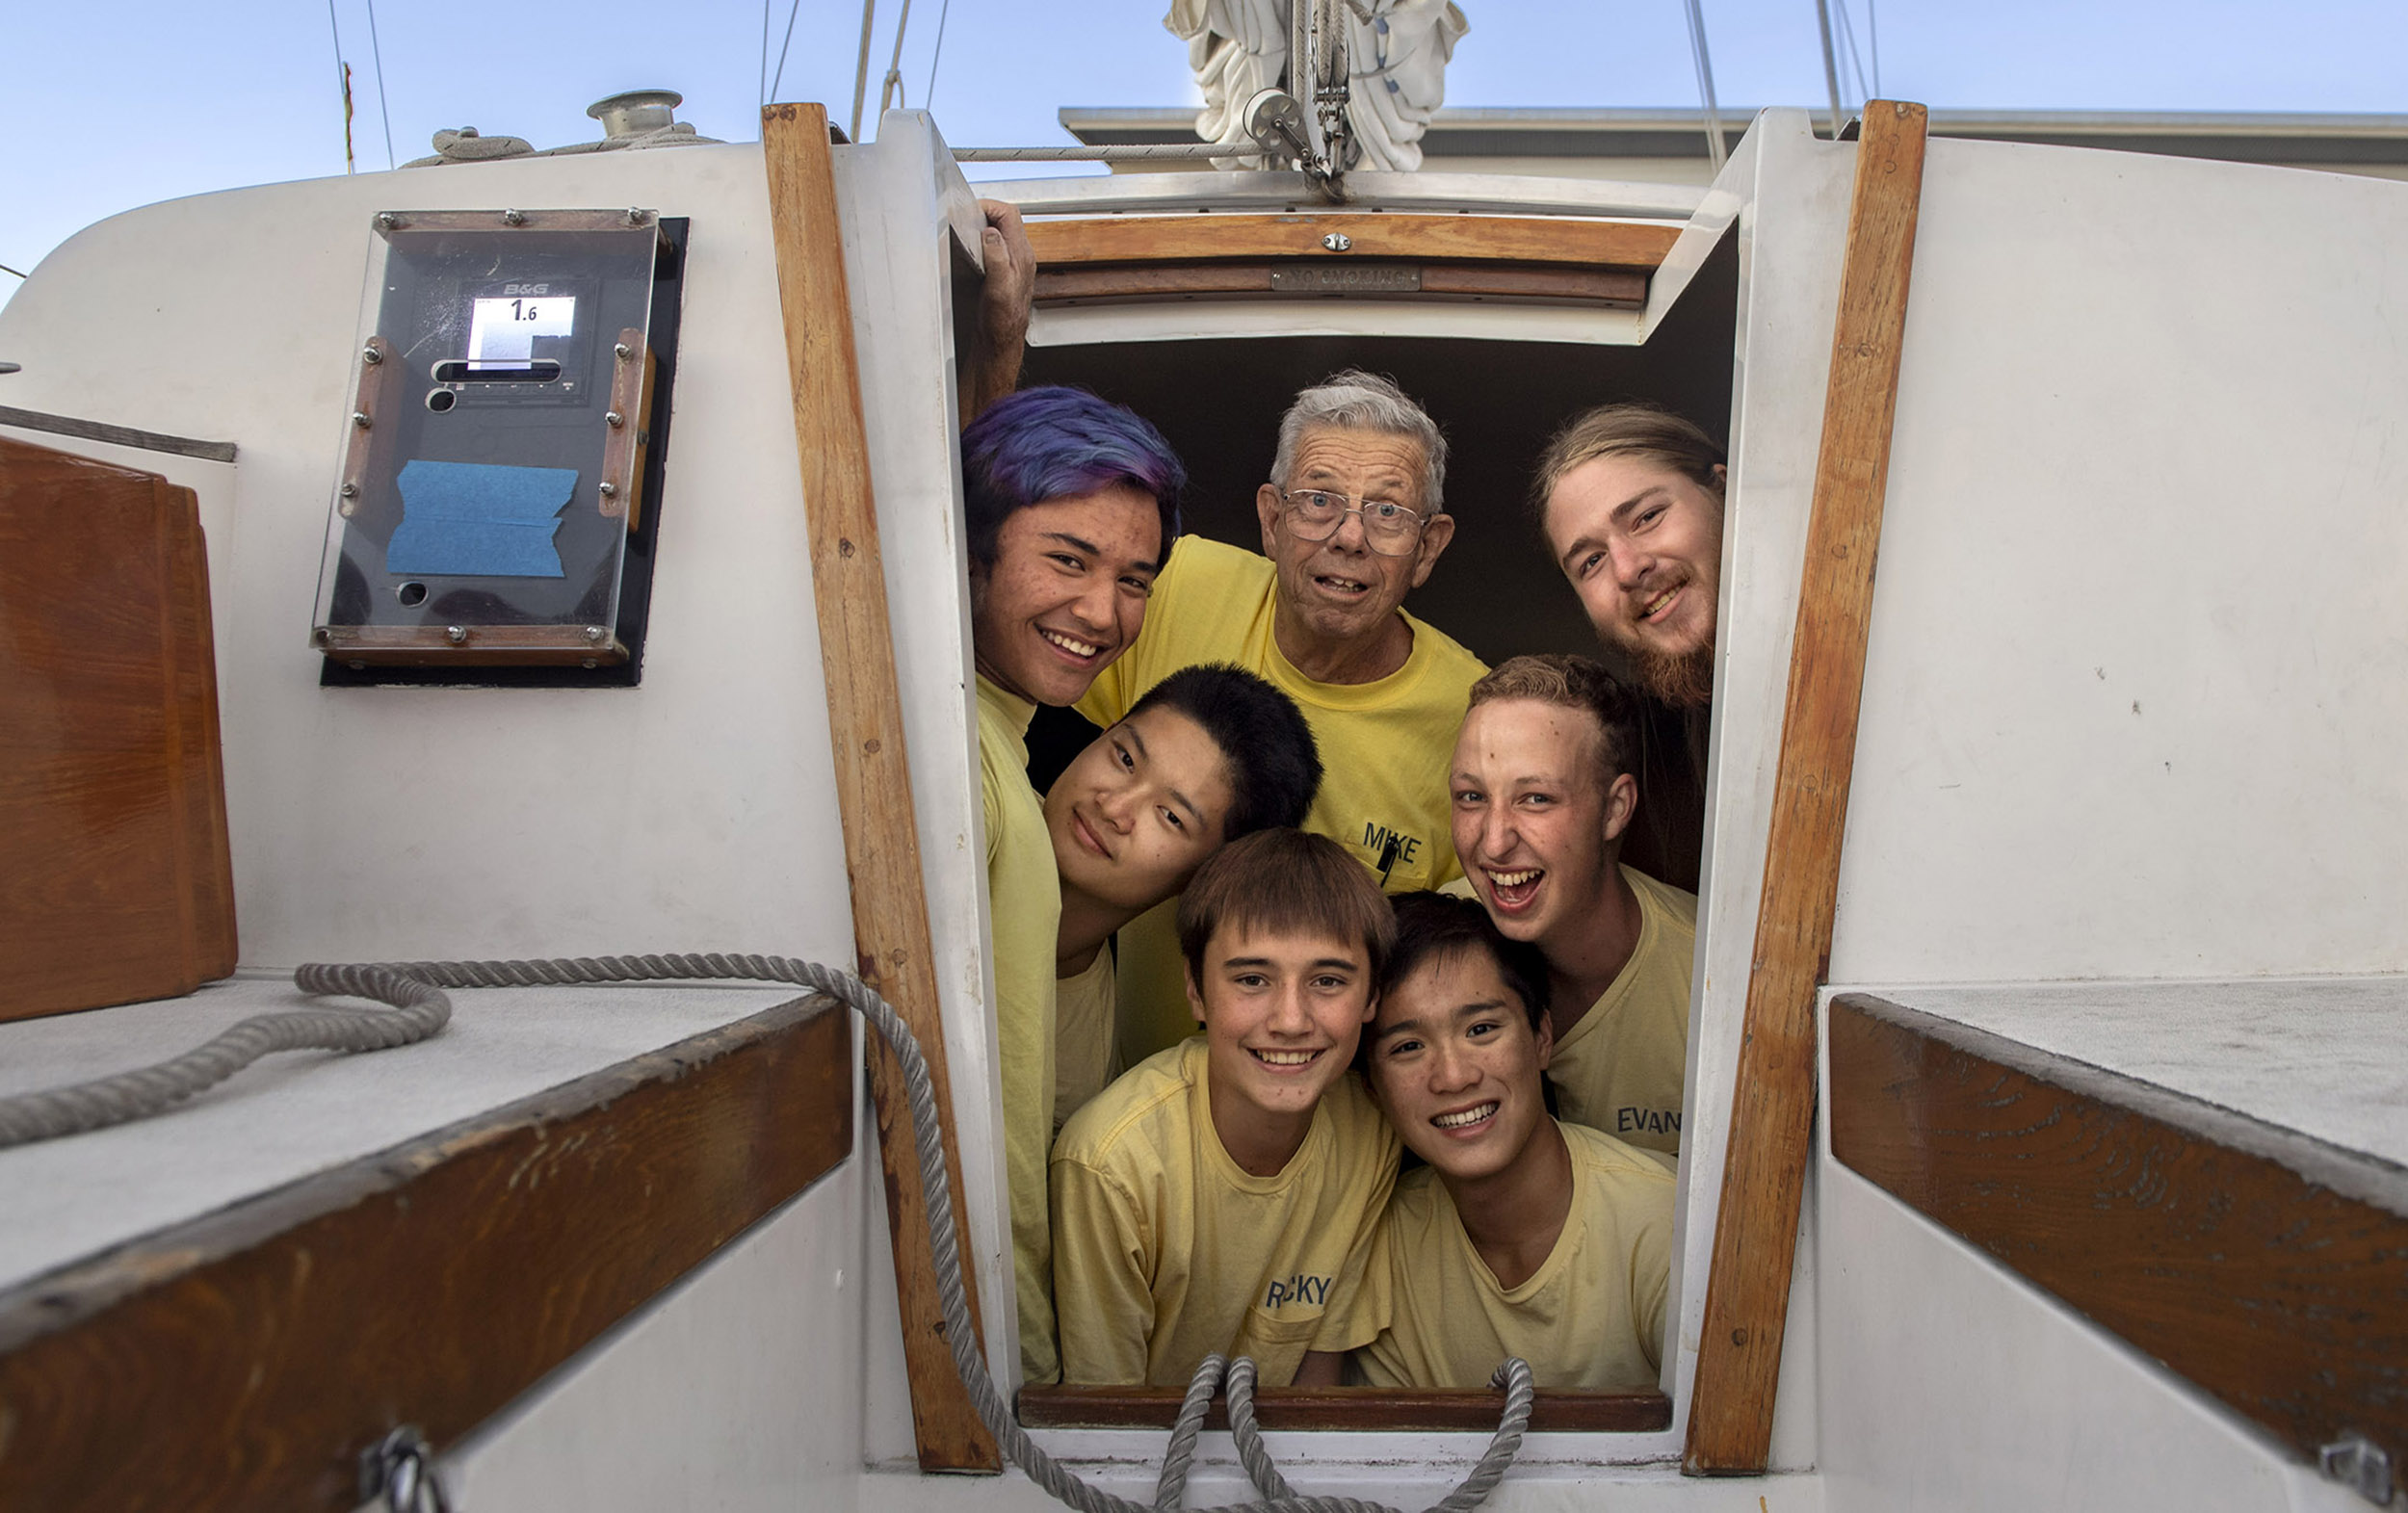 Volunteer Mike Stewart celebrates 55 years as skipper of Sea Scout Ship 711 or Del Mar, where he mentors Boy Scouts in the maritime program. He has taught 700 boys including this current group, clockwise from top left: Josh Timmerman, 19, Nicholas Ryti, 19, Evan Mack, 18, Duy Nguyen, 16, Ricky Kramer, 14, and Ted Xiag, 17, in Newport Beach on Wednesday, August 29, 2018.